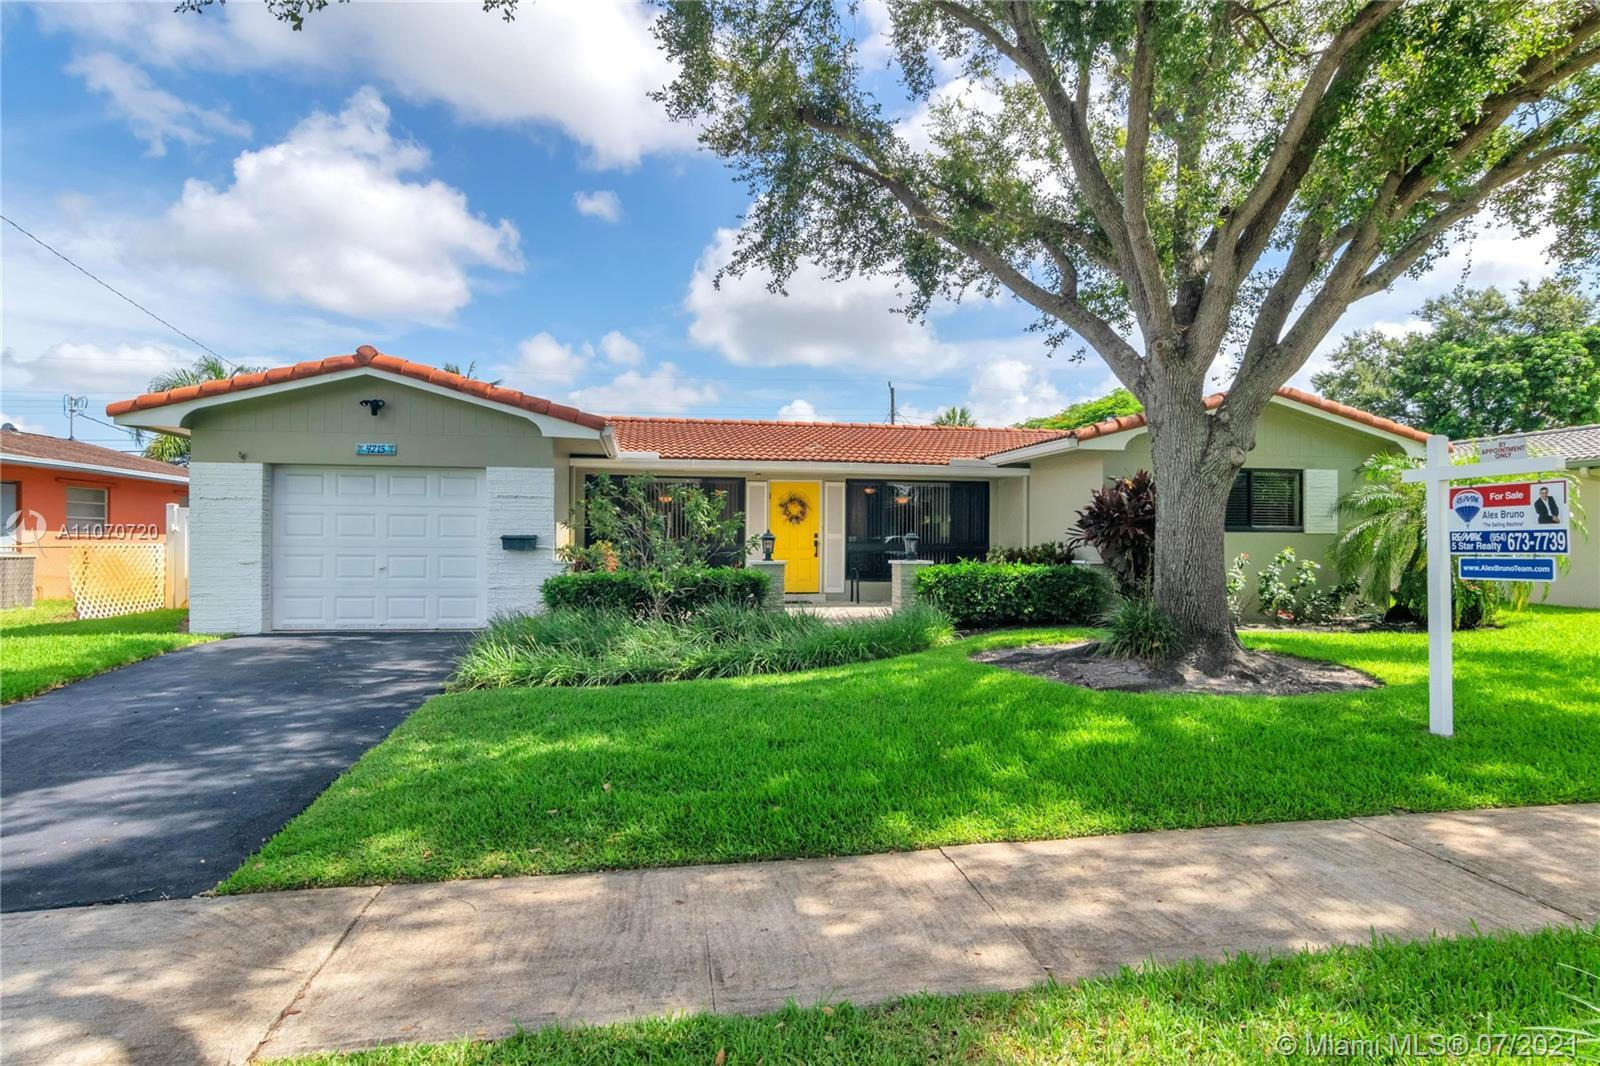 CONVENIENTLY LOCATED IN THE HEART OF HOLLYWOOD HILLS. THIS HOME FEATURES 3 BD PLUS DEN. 2 FULL BA AN